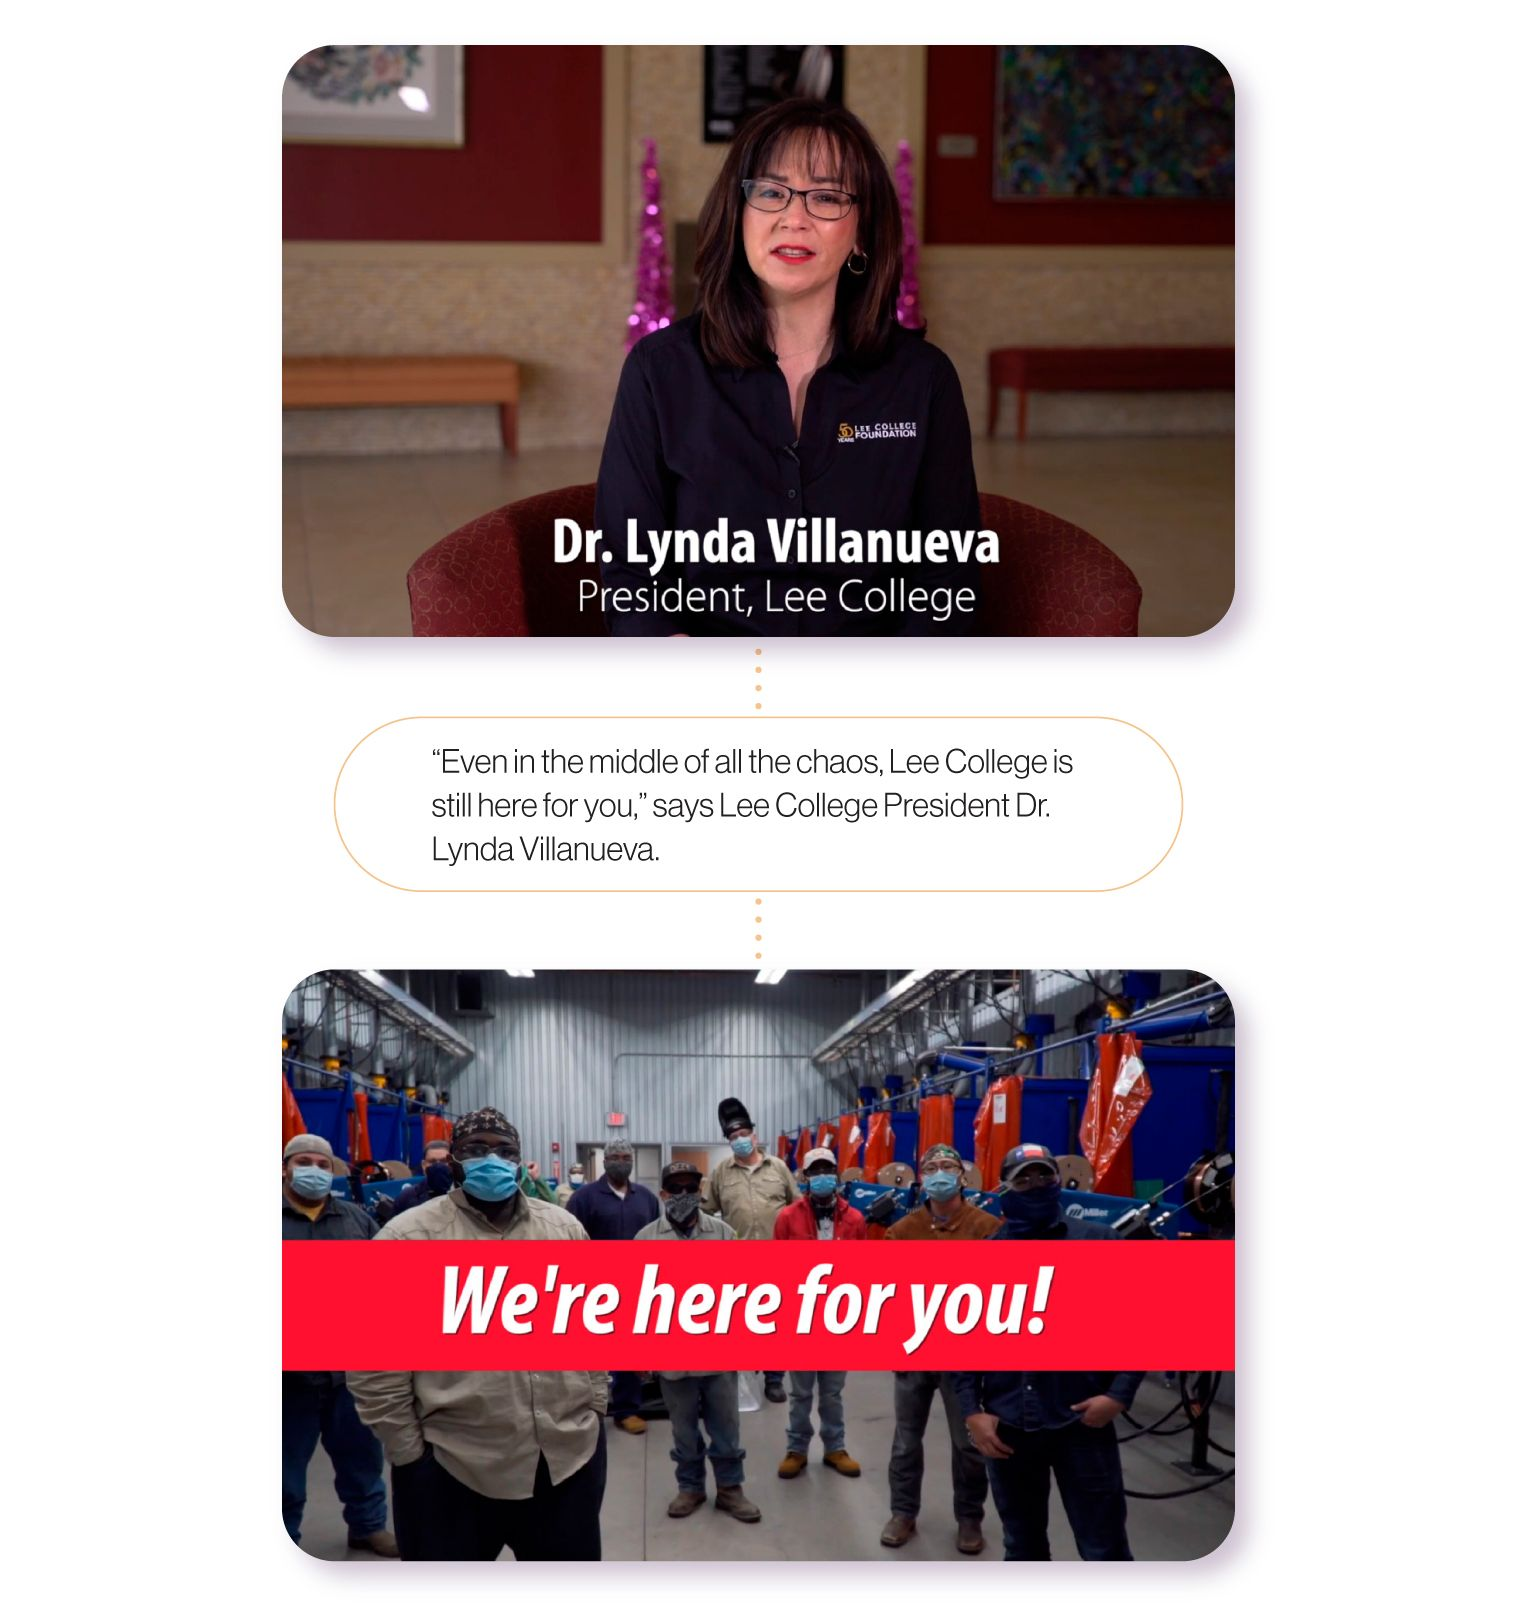 Image:Stills from a Lee College promotional video highlighting their President, Dr. Lynda Villanueva and students in a workshop, with the quote from President Villanueva, 'Even in the middle of all the chaos, Lee College is still here for you'